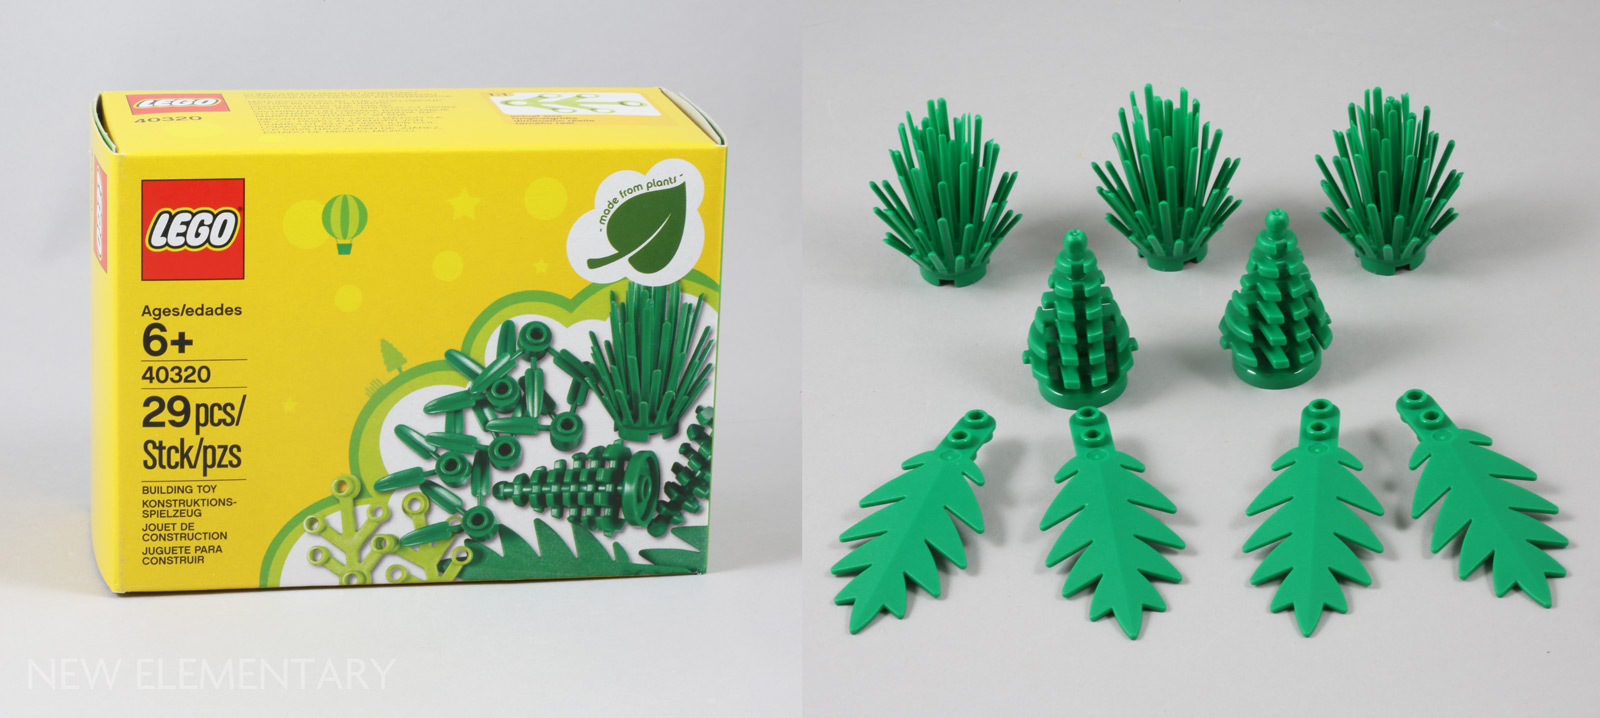 Lego 20 Pieces 1x1 Green Brick With 3 Bamboo Leaves 30176 Jungle//Star Wars